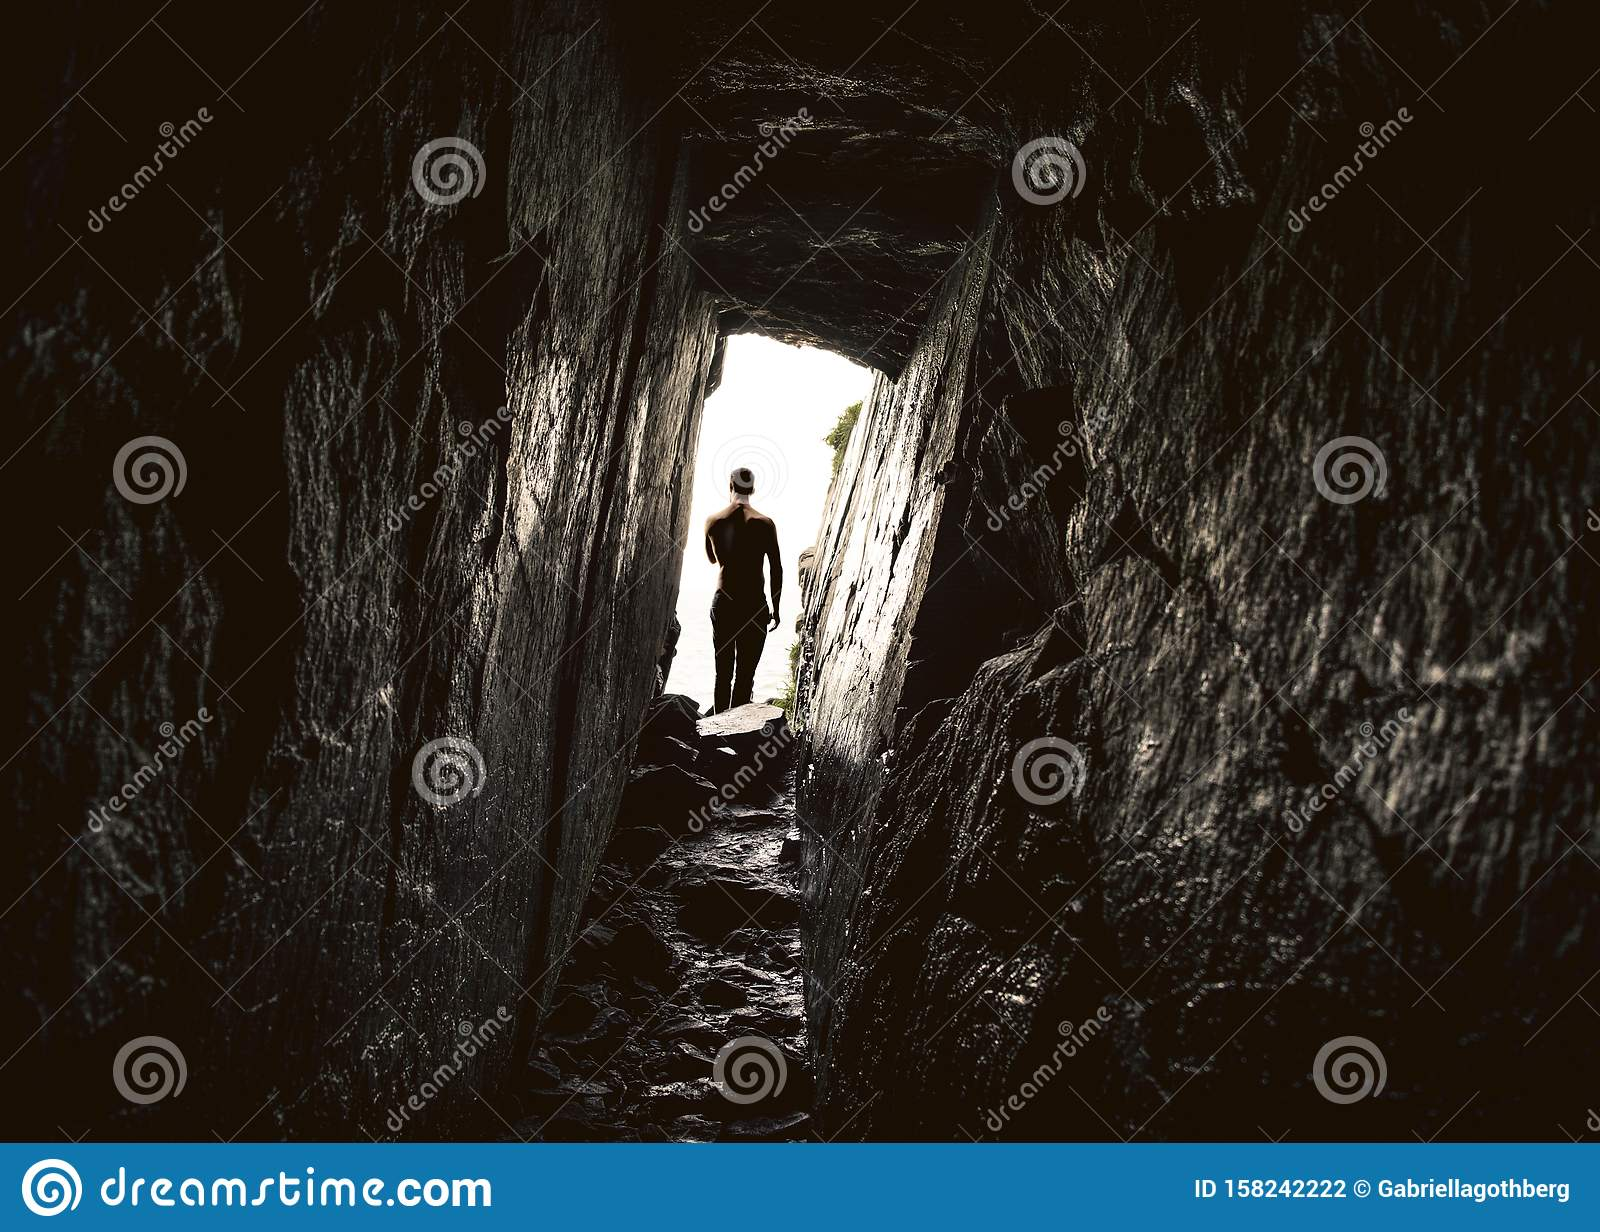 Man in the entrance of a deep narrow cave.